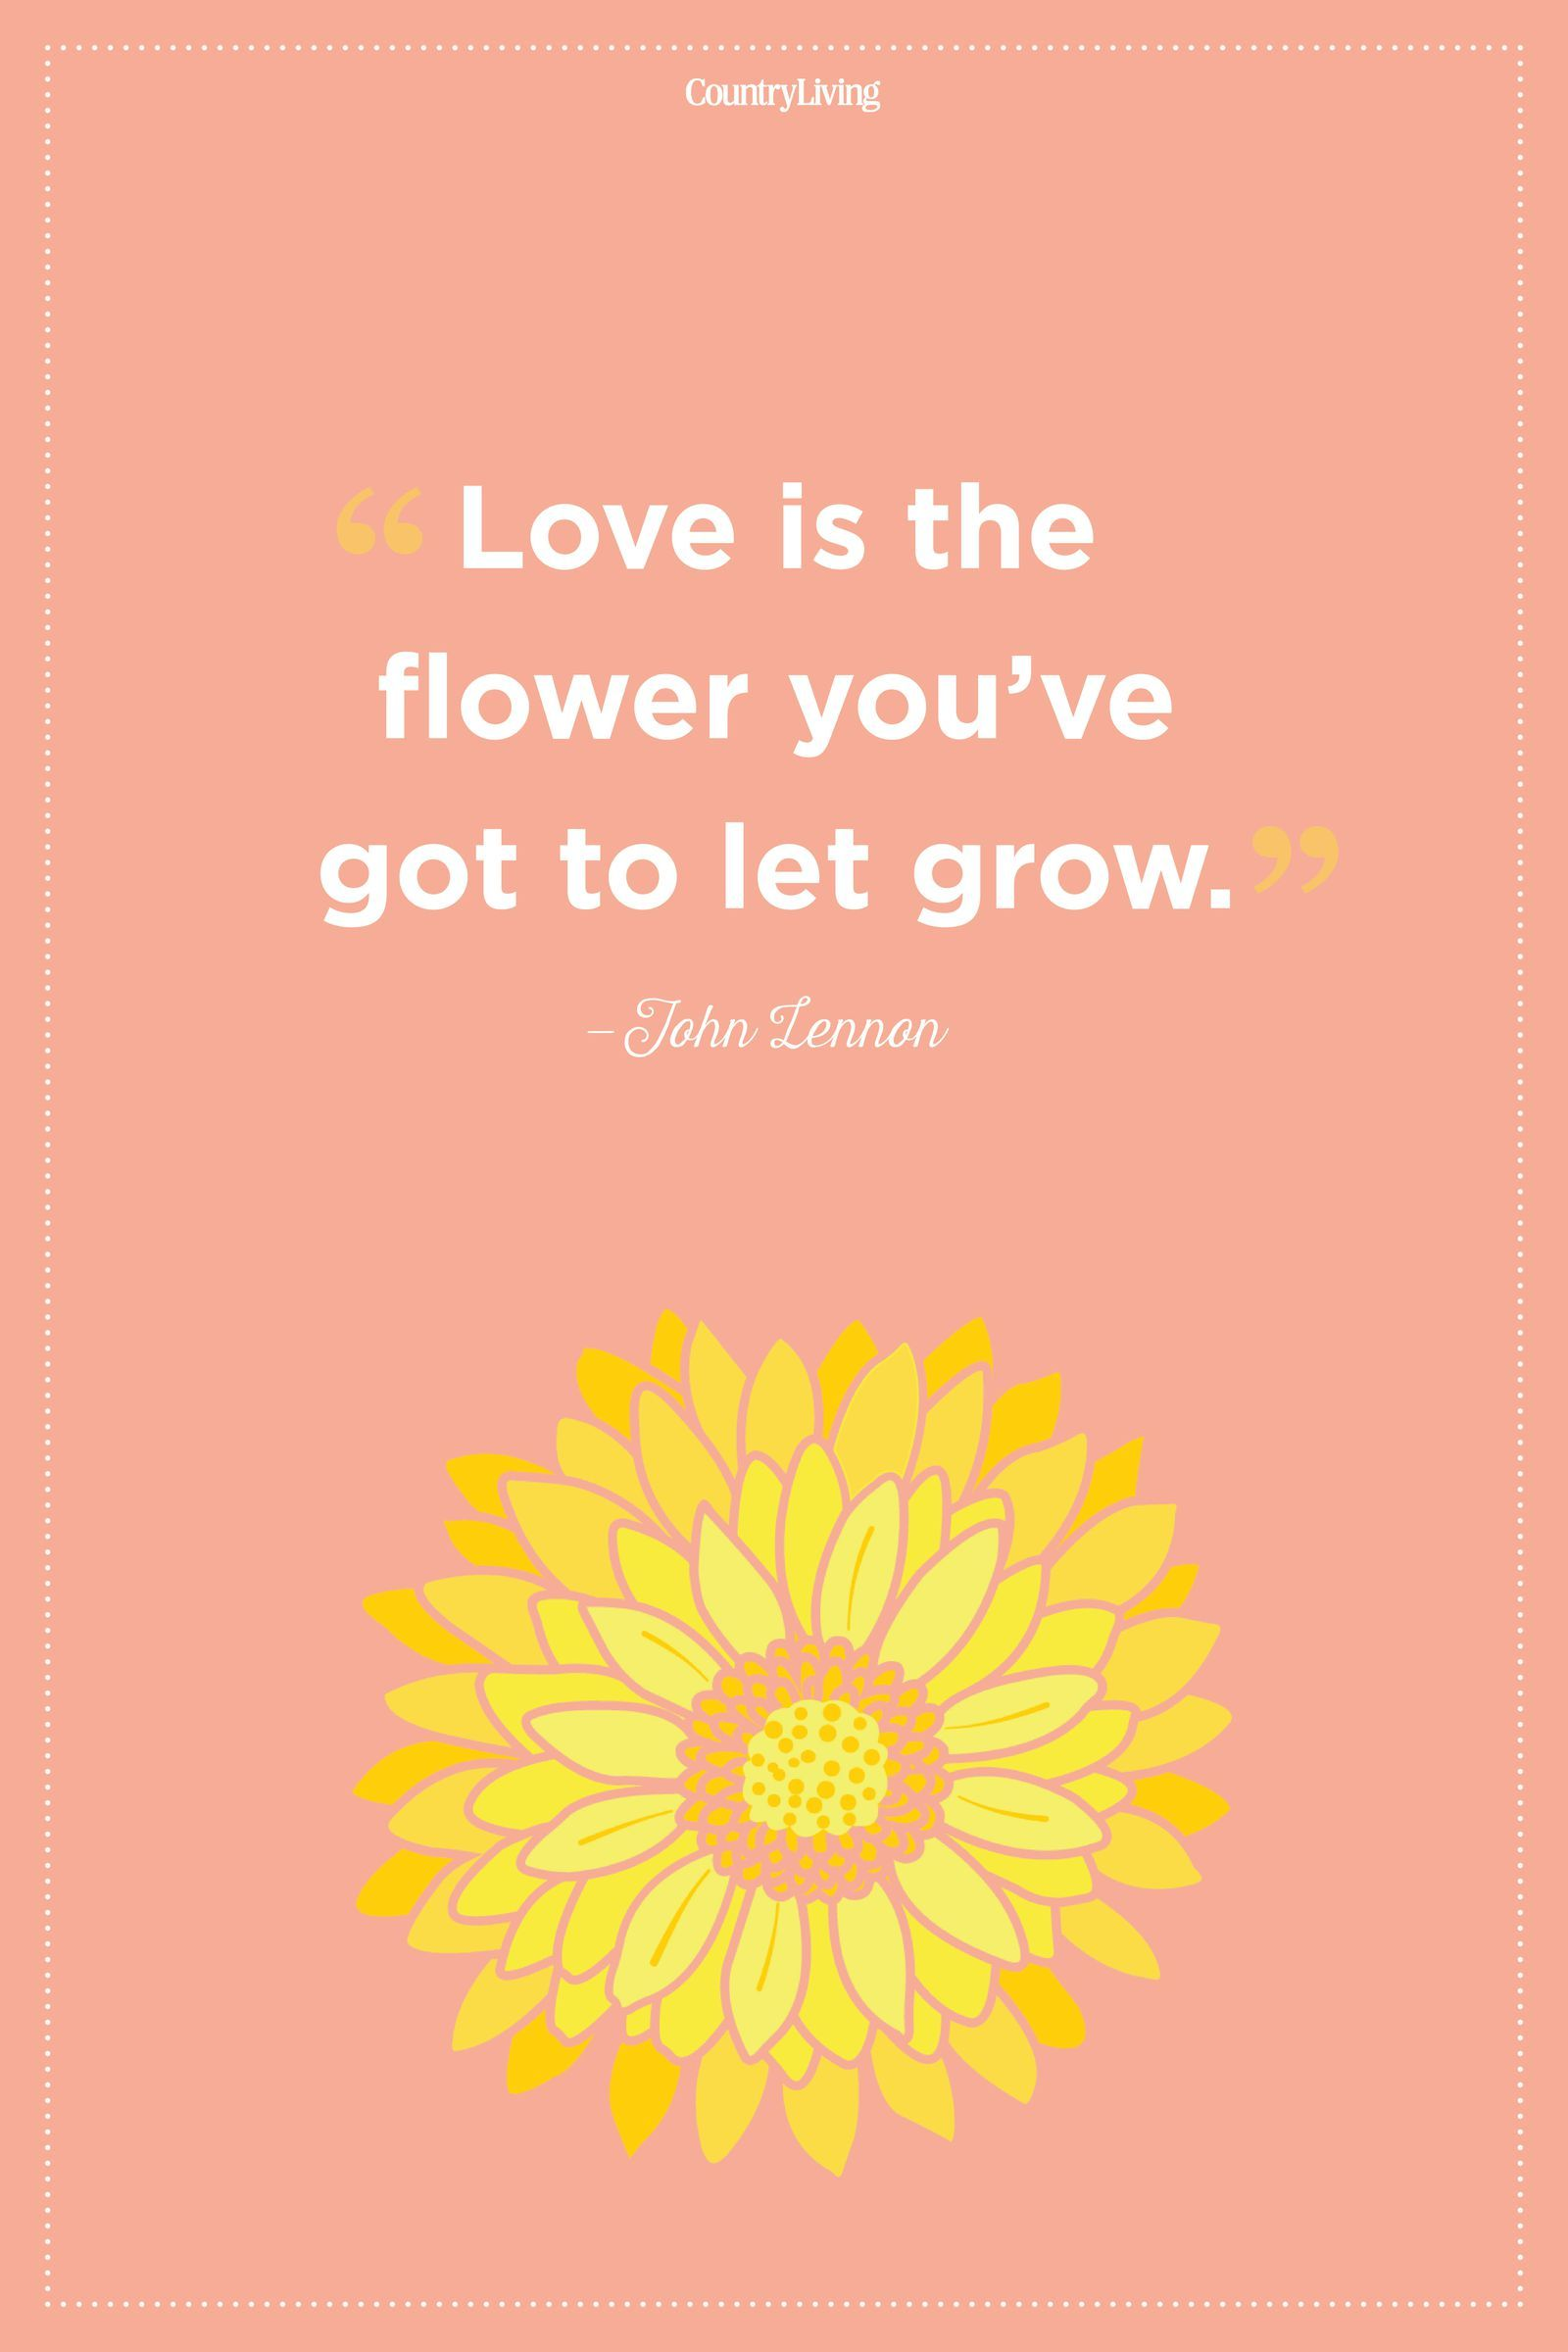 Flower Quotes to Inspire Growth